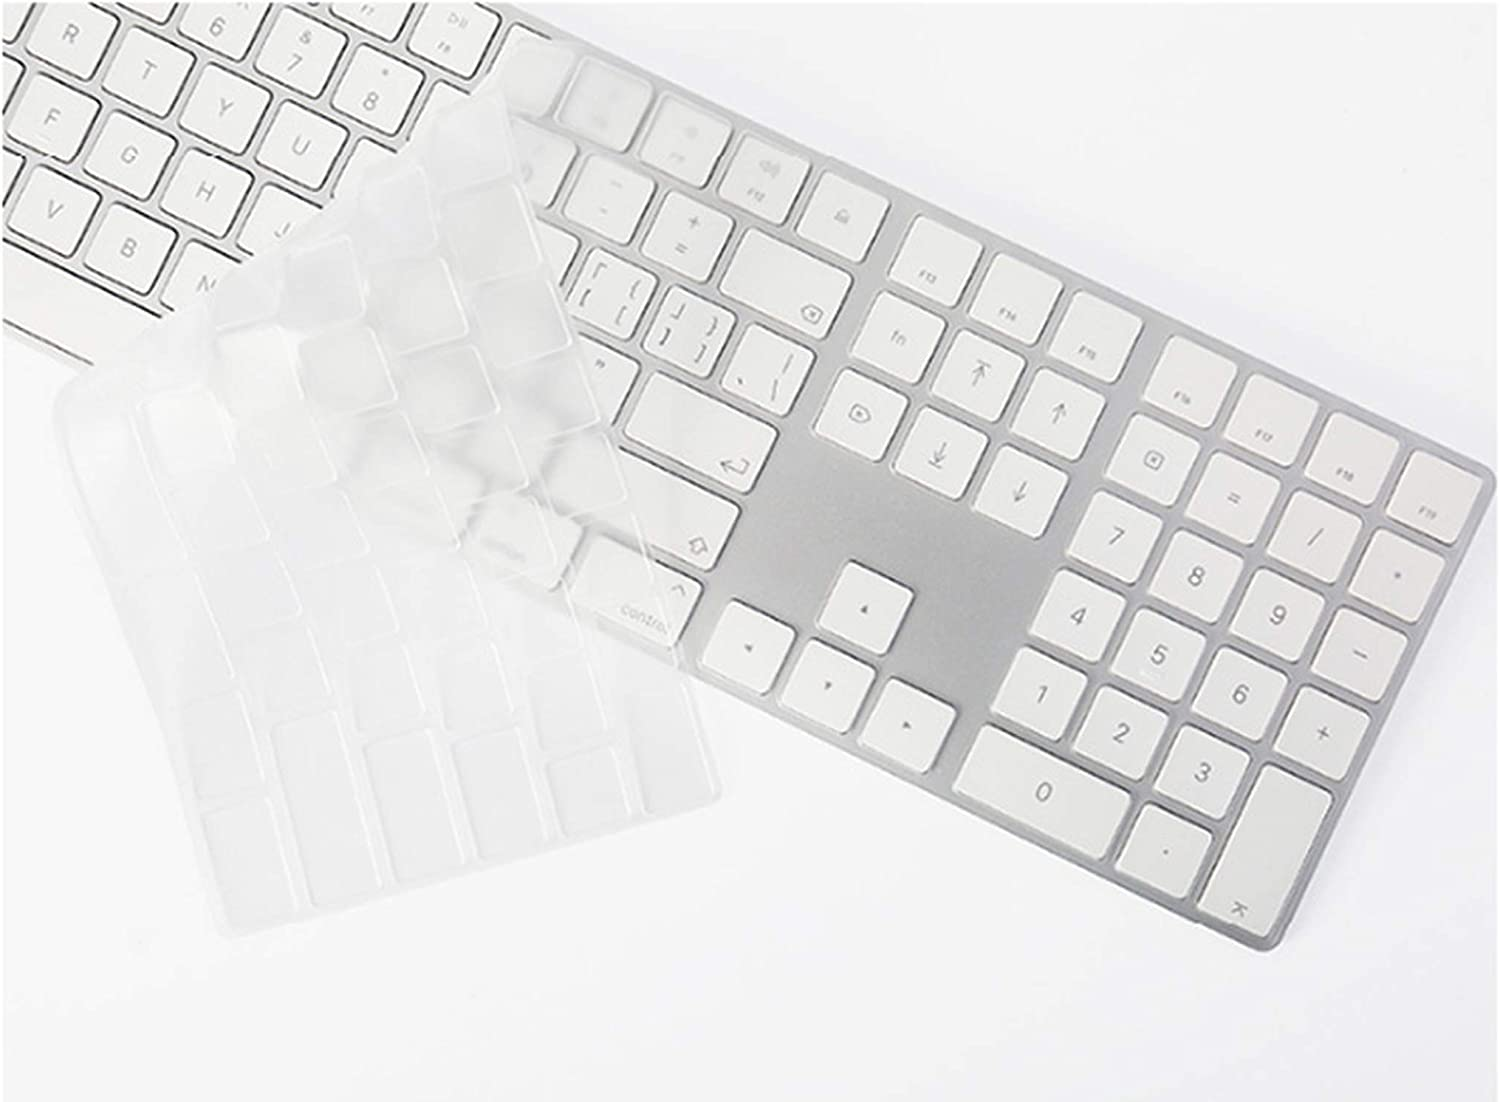 US Version TPU Clear Keyboard Cover Skin for iMac G6 A1243 Wired Keyboard with A Numeric Ultra Thin Protector Cover,TPU